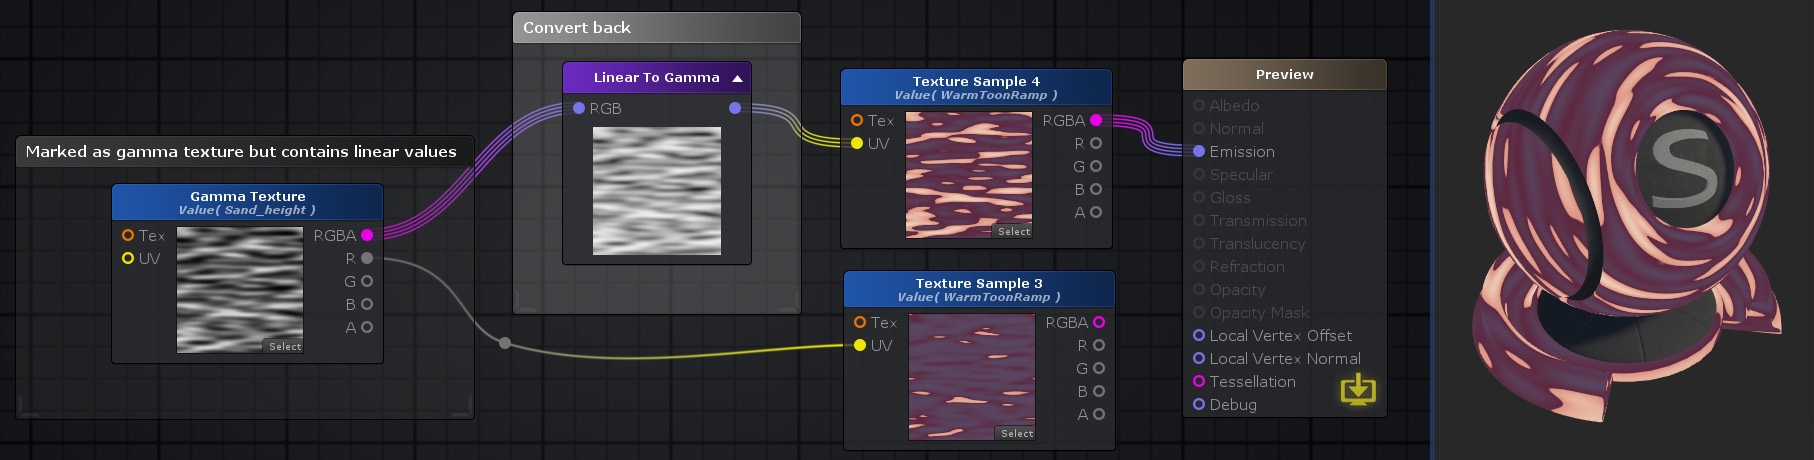 Unity Products:Amplify Shader Editor/Linear To Gamma - Amplify